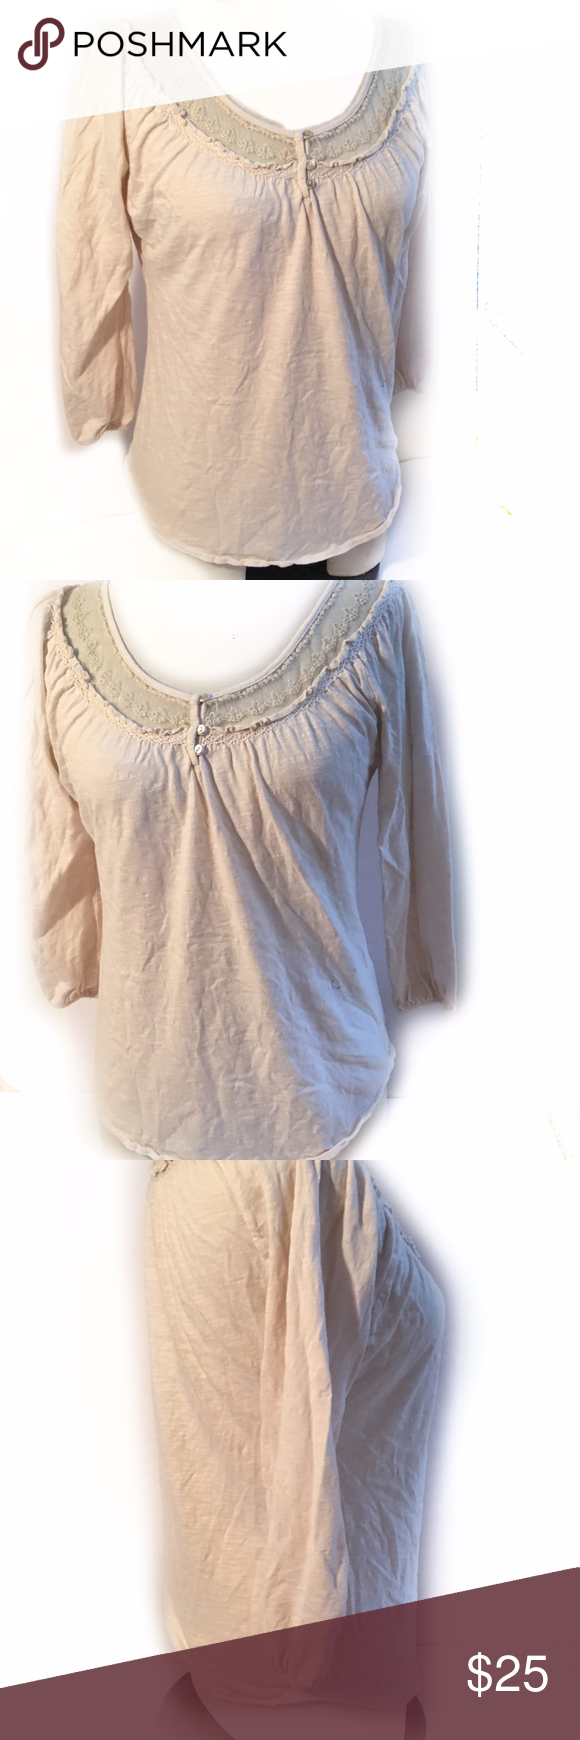 "Lucky Brand Women's Knit Tunic Top SZ S Lace Lucky Brand Women's Knit Tunic Top SZ S 100% Cotton Cream 3/4 Gathered Sleeve  20 1/2"" arm pit to arm pit 21"" length Lucky Brand Tops"